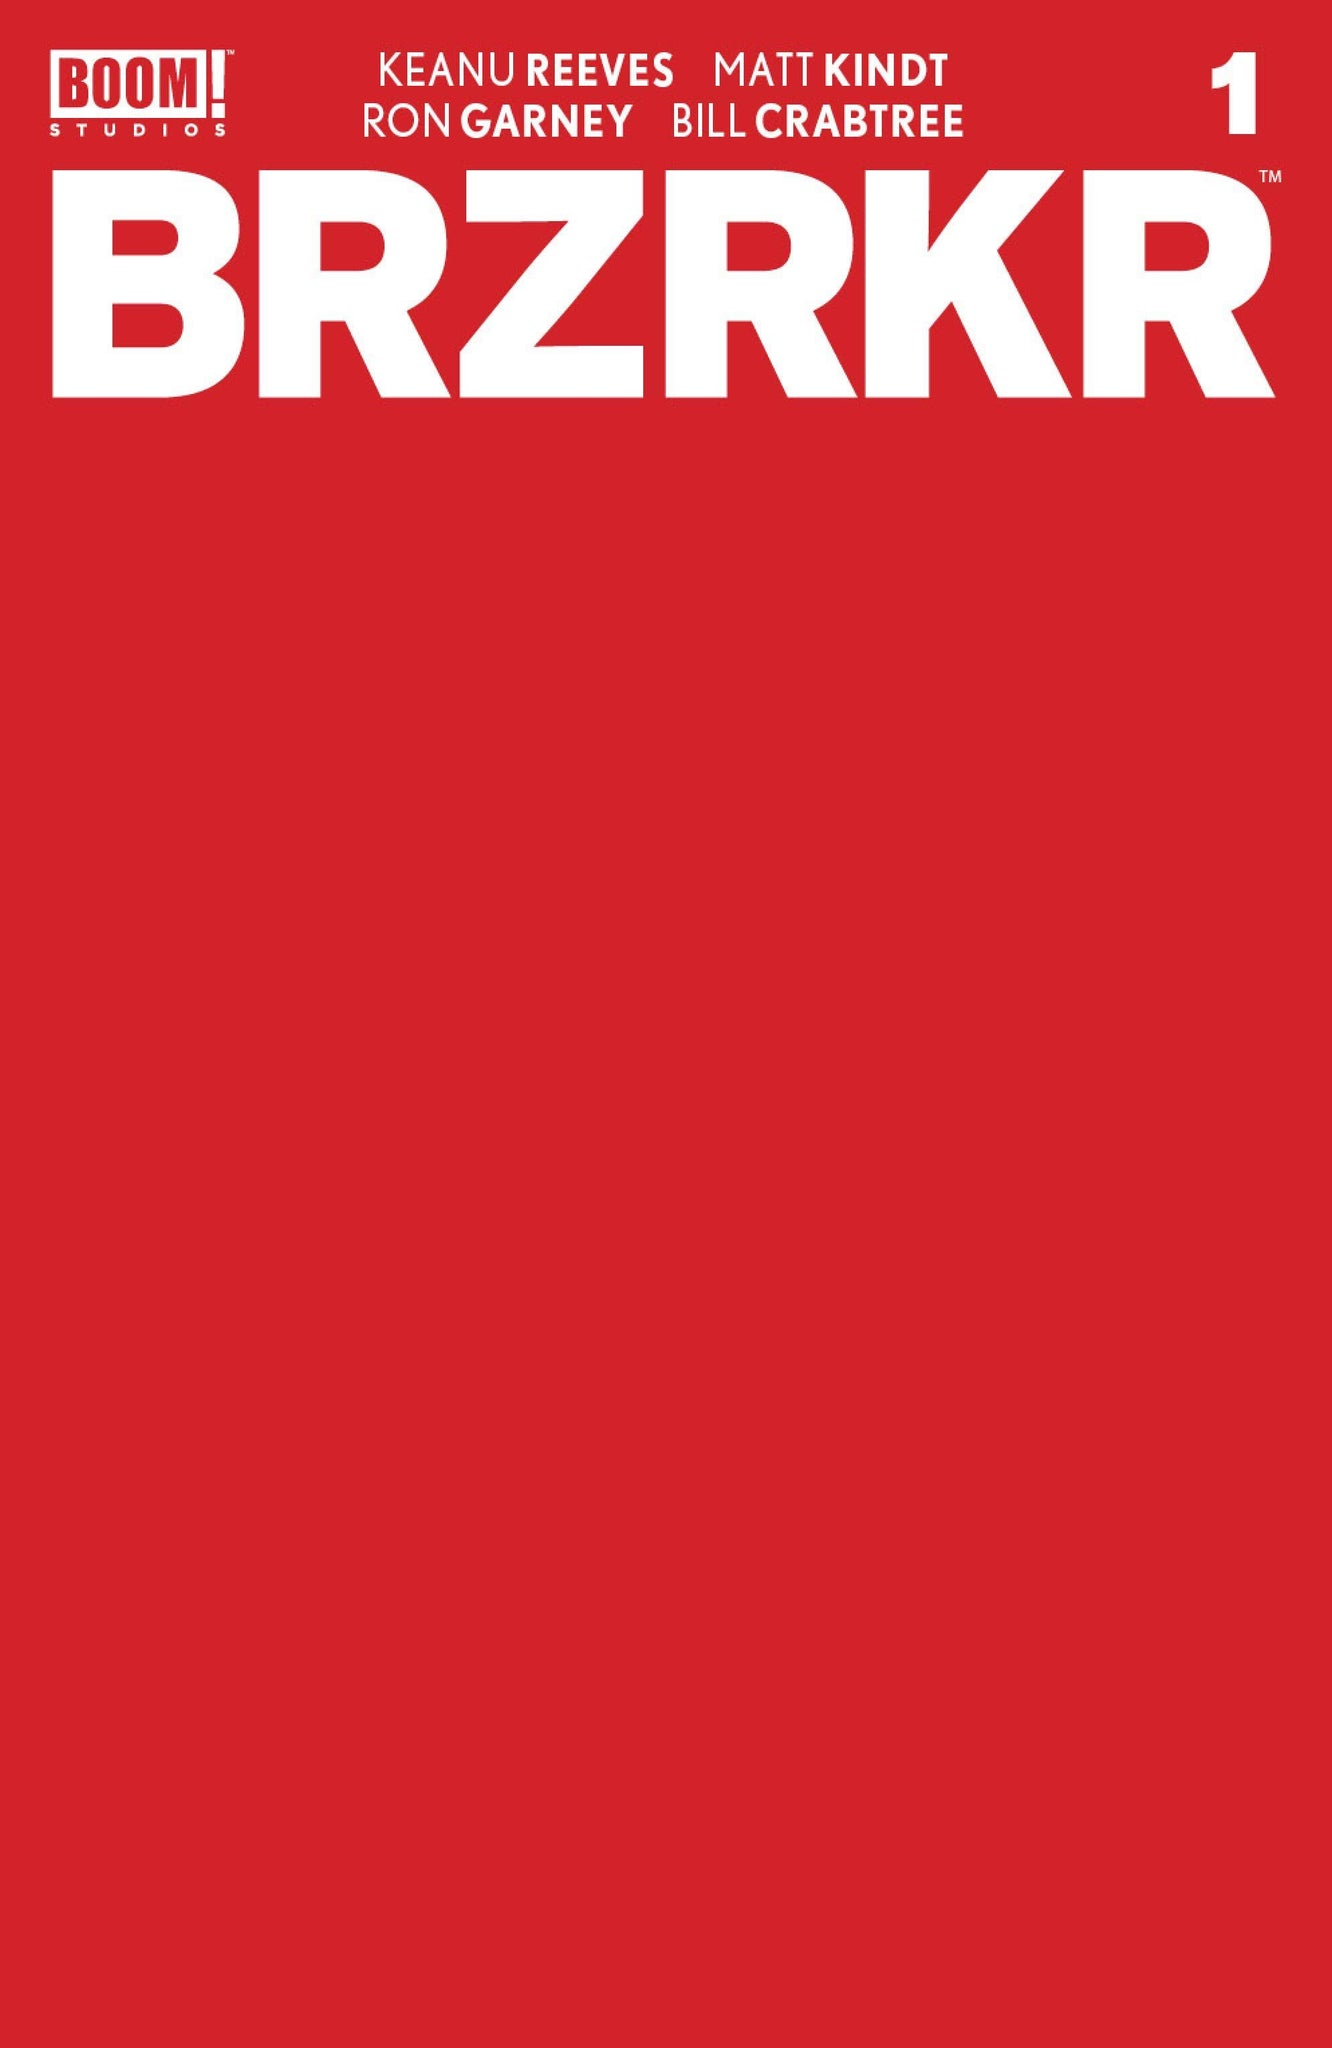 BRZRKR #1 1:10 RED BLANK SKETCH Variant Cover F